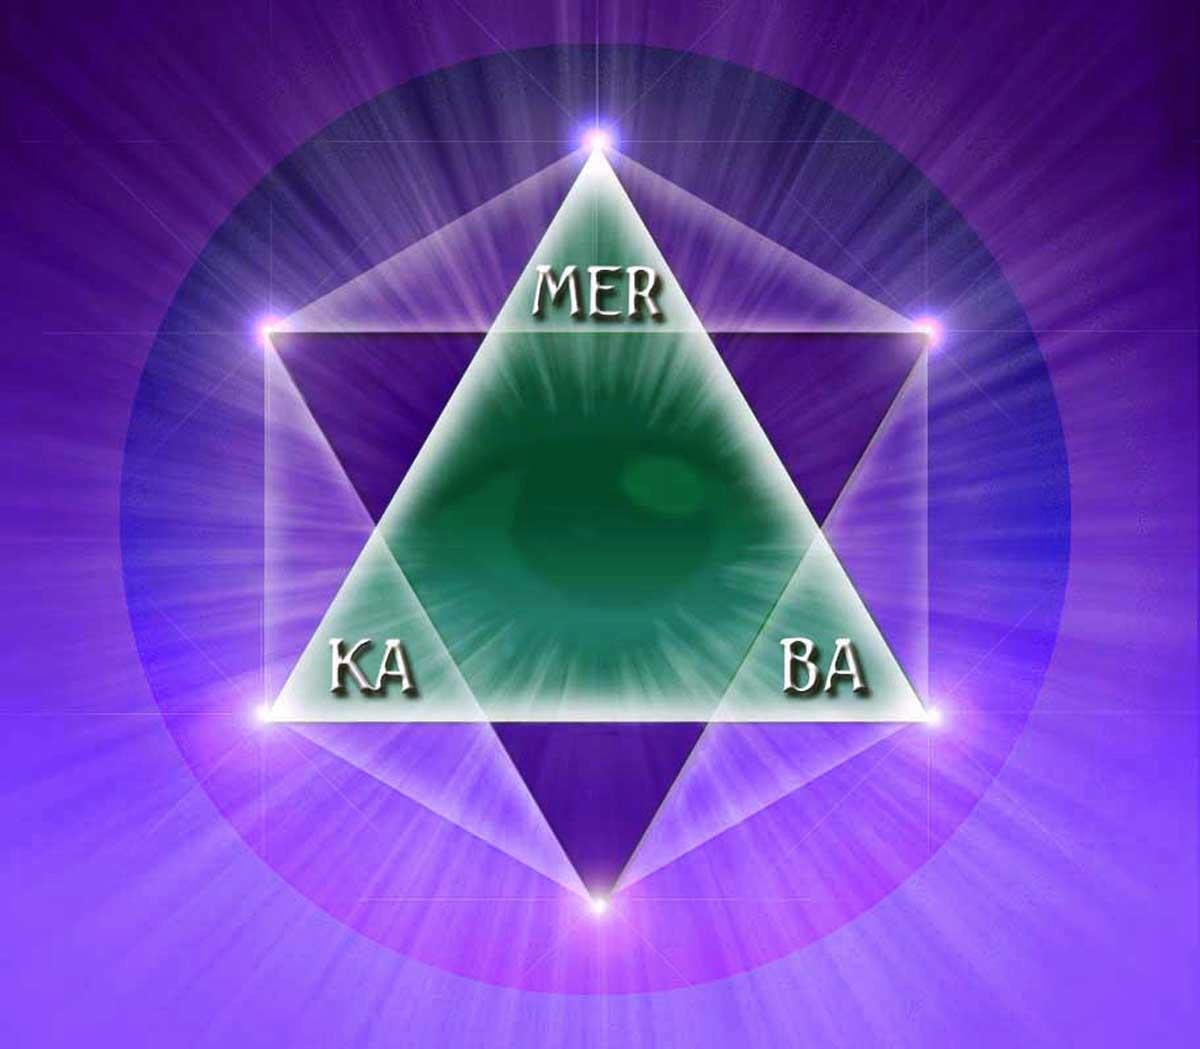 merkaba with words